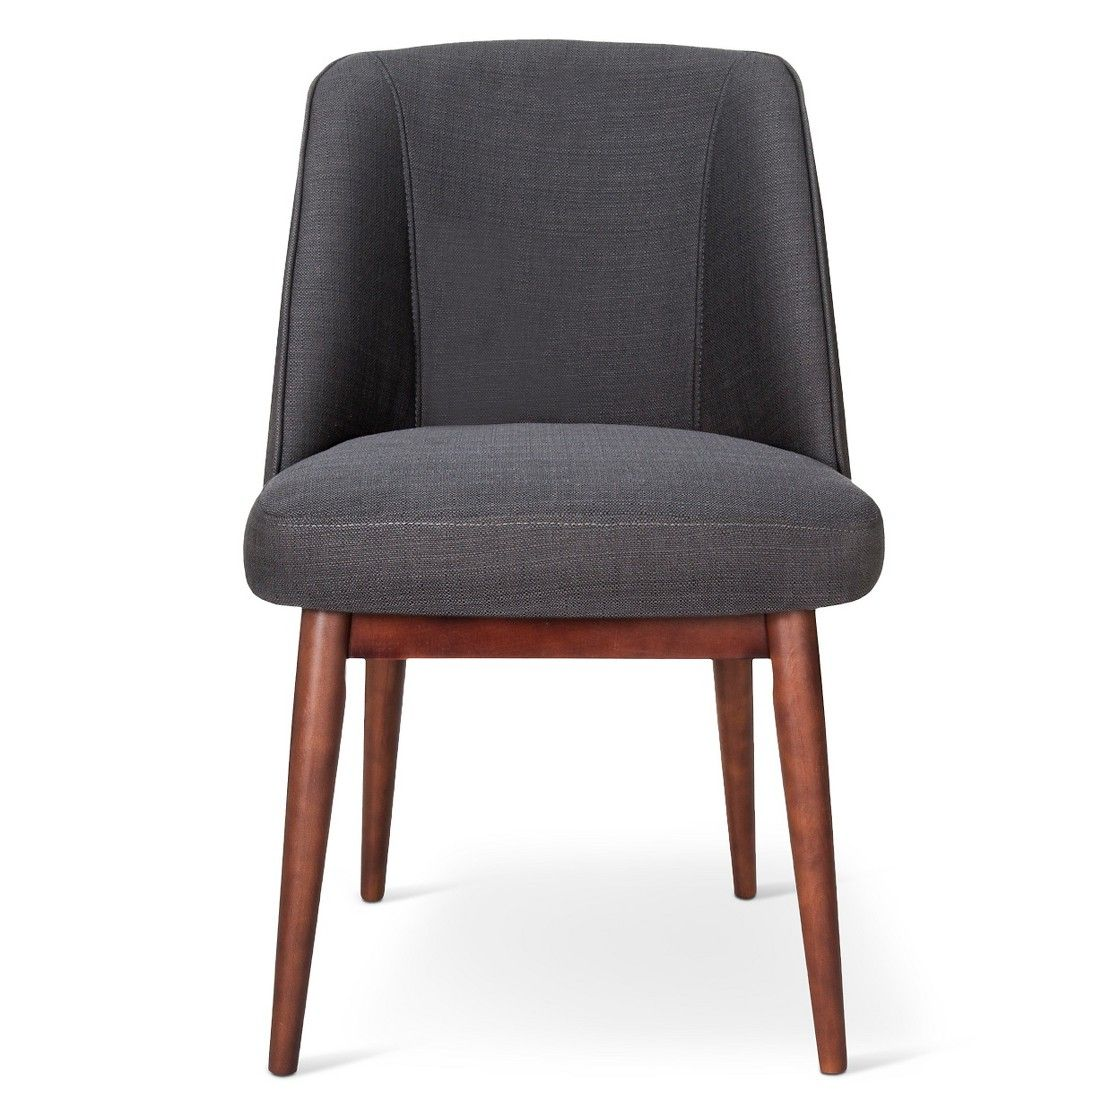 Modern anywhere chair graphite threshold chairs the for Anywhere chair